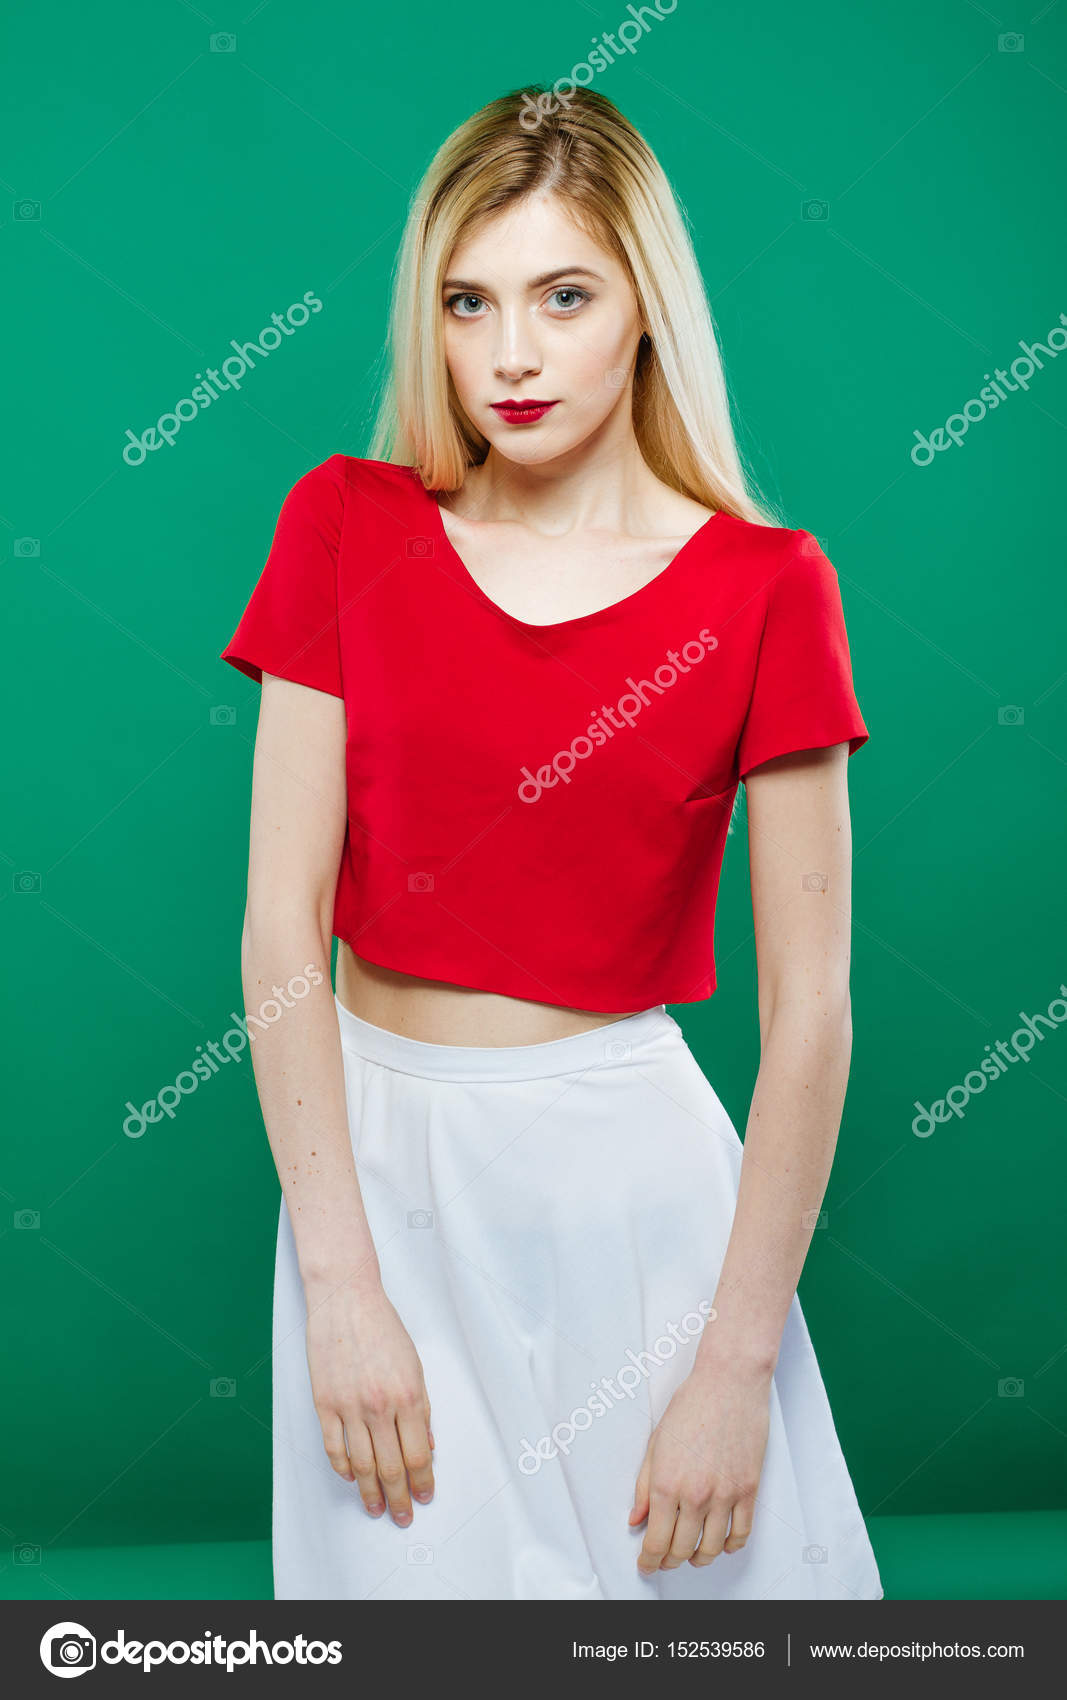 024cdfc0982683 Sexy Young Girl Wearing Red Top and White Skirt is Posing on Green  Background. Portrait